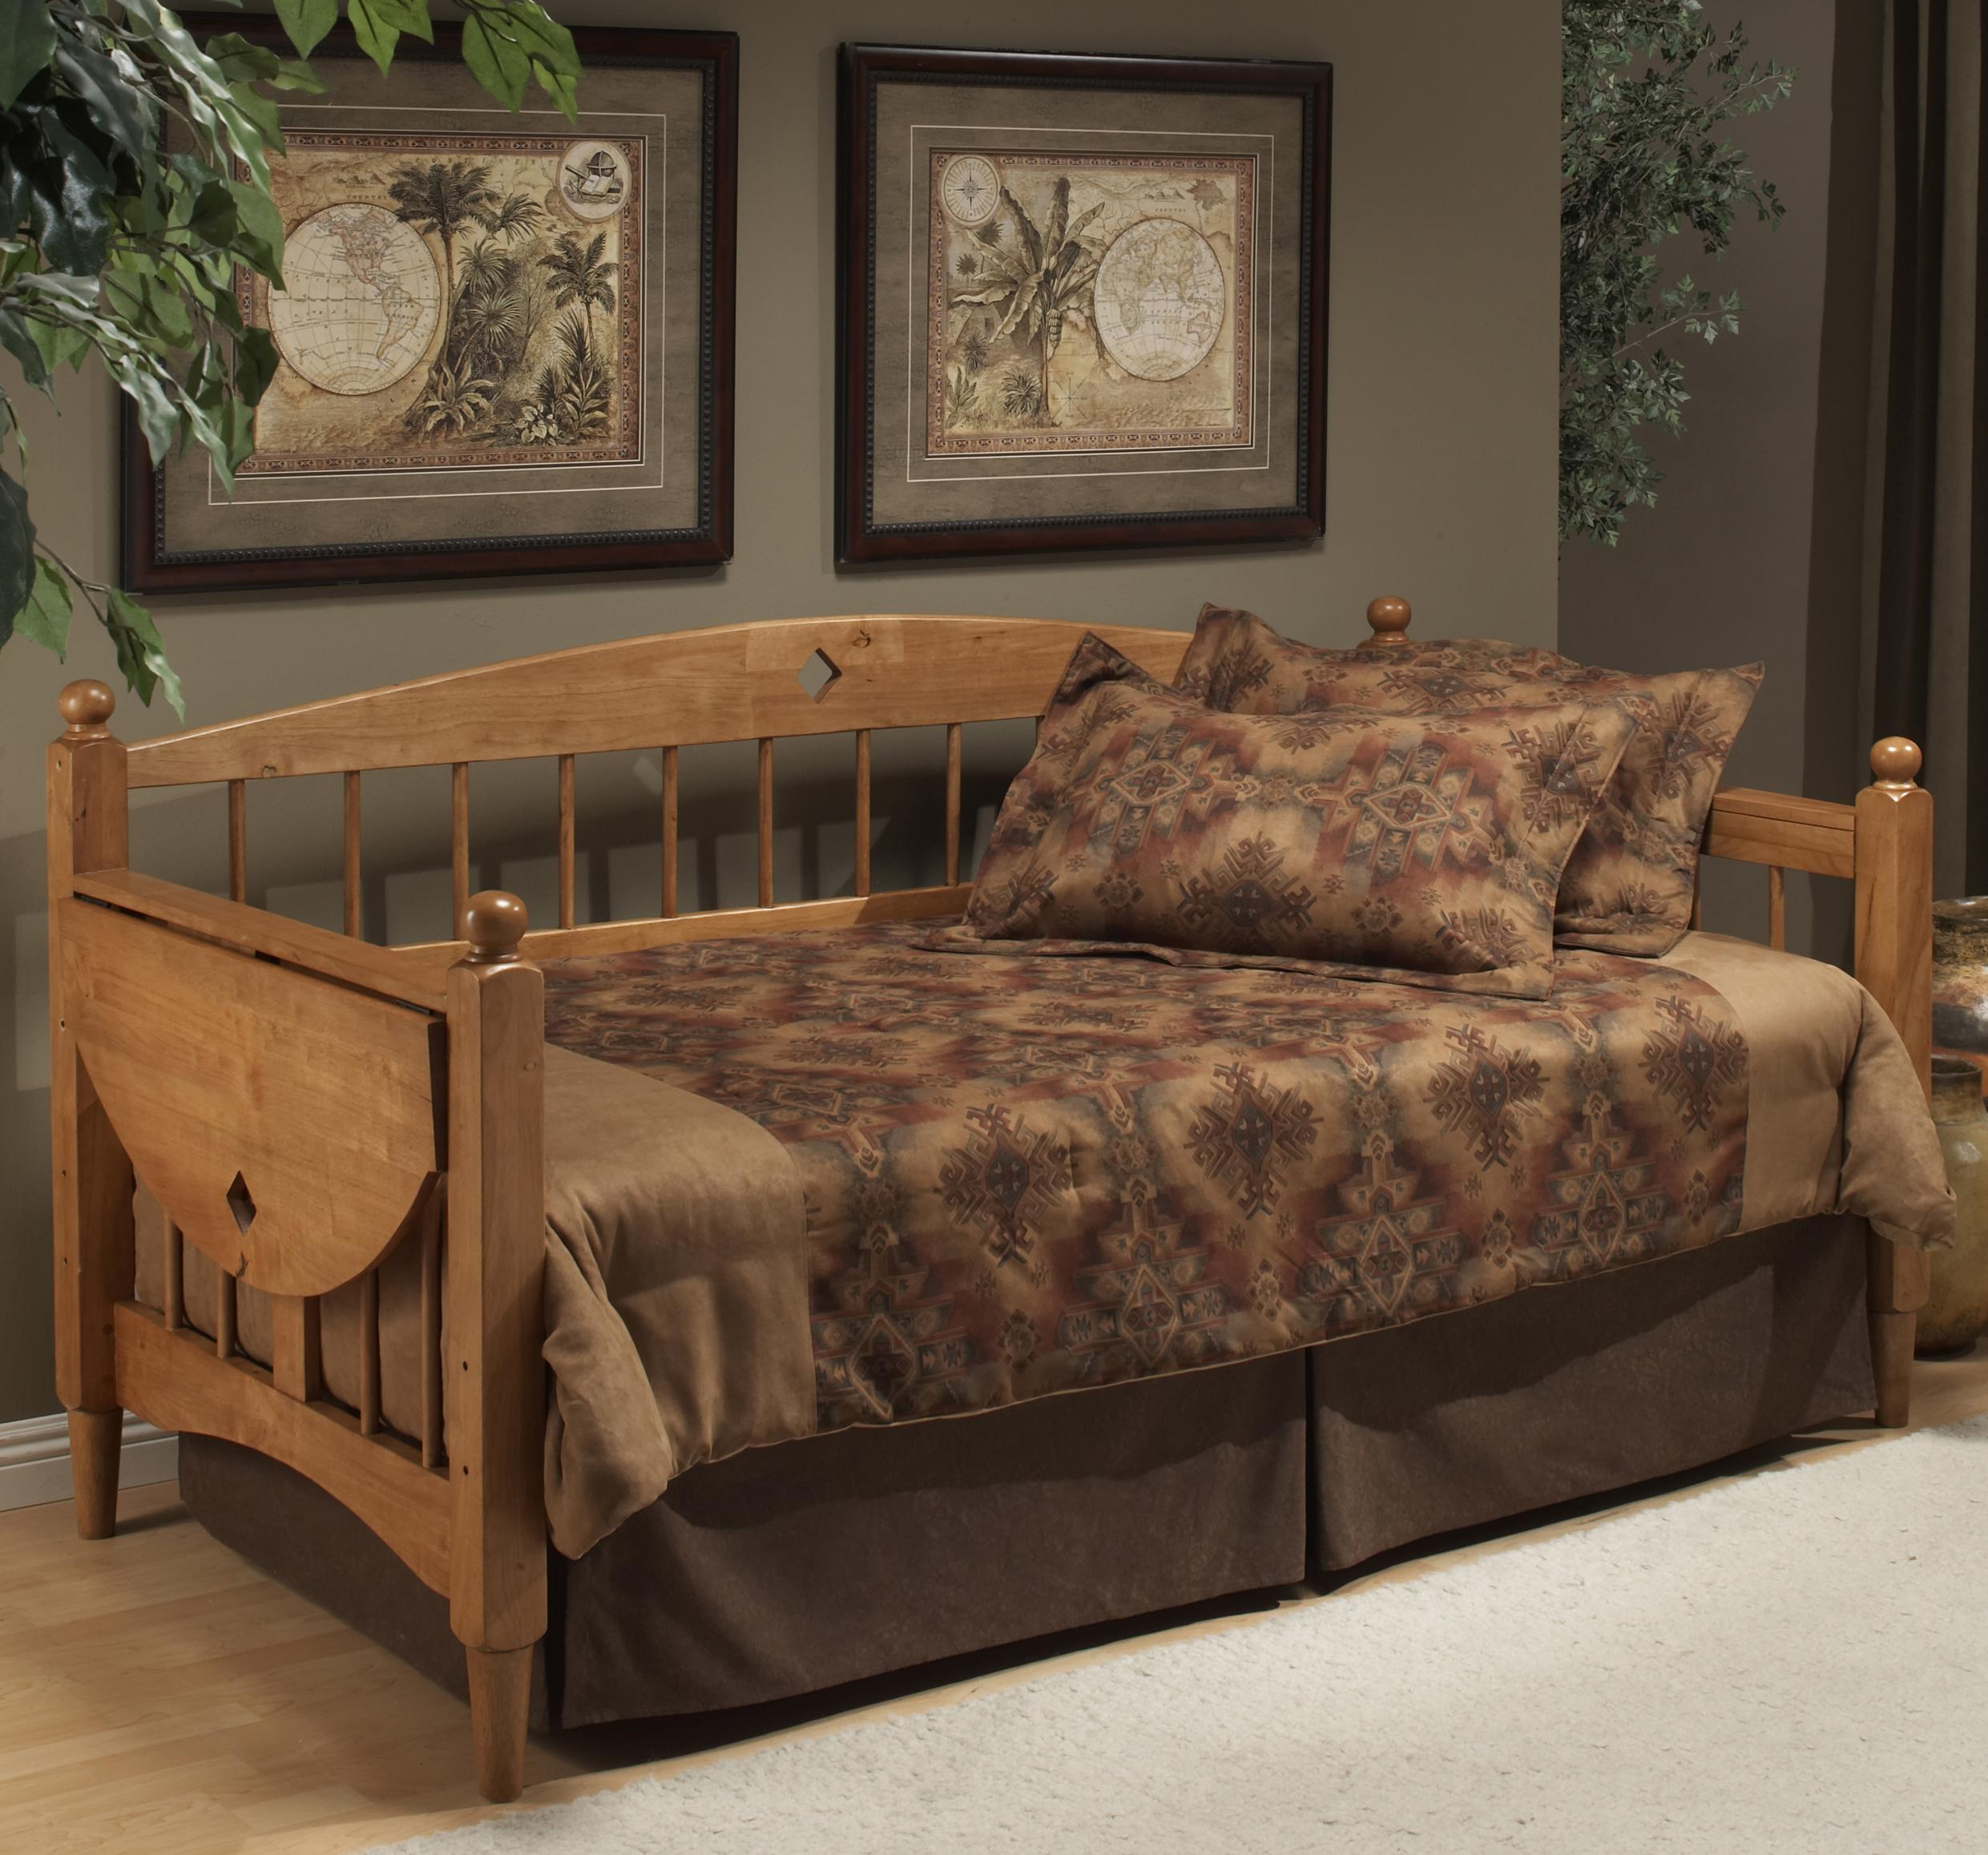 Hillsdale Daybeds Twin Dalton Daybed Boulevard Home Furnishings